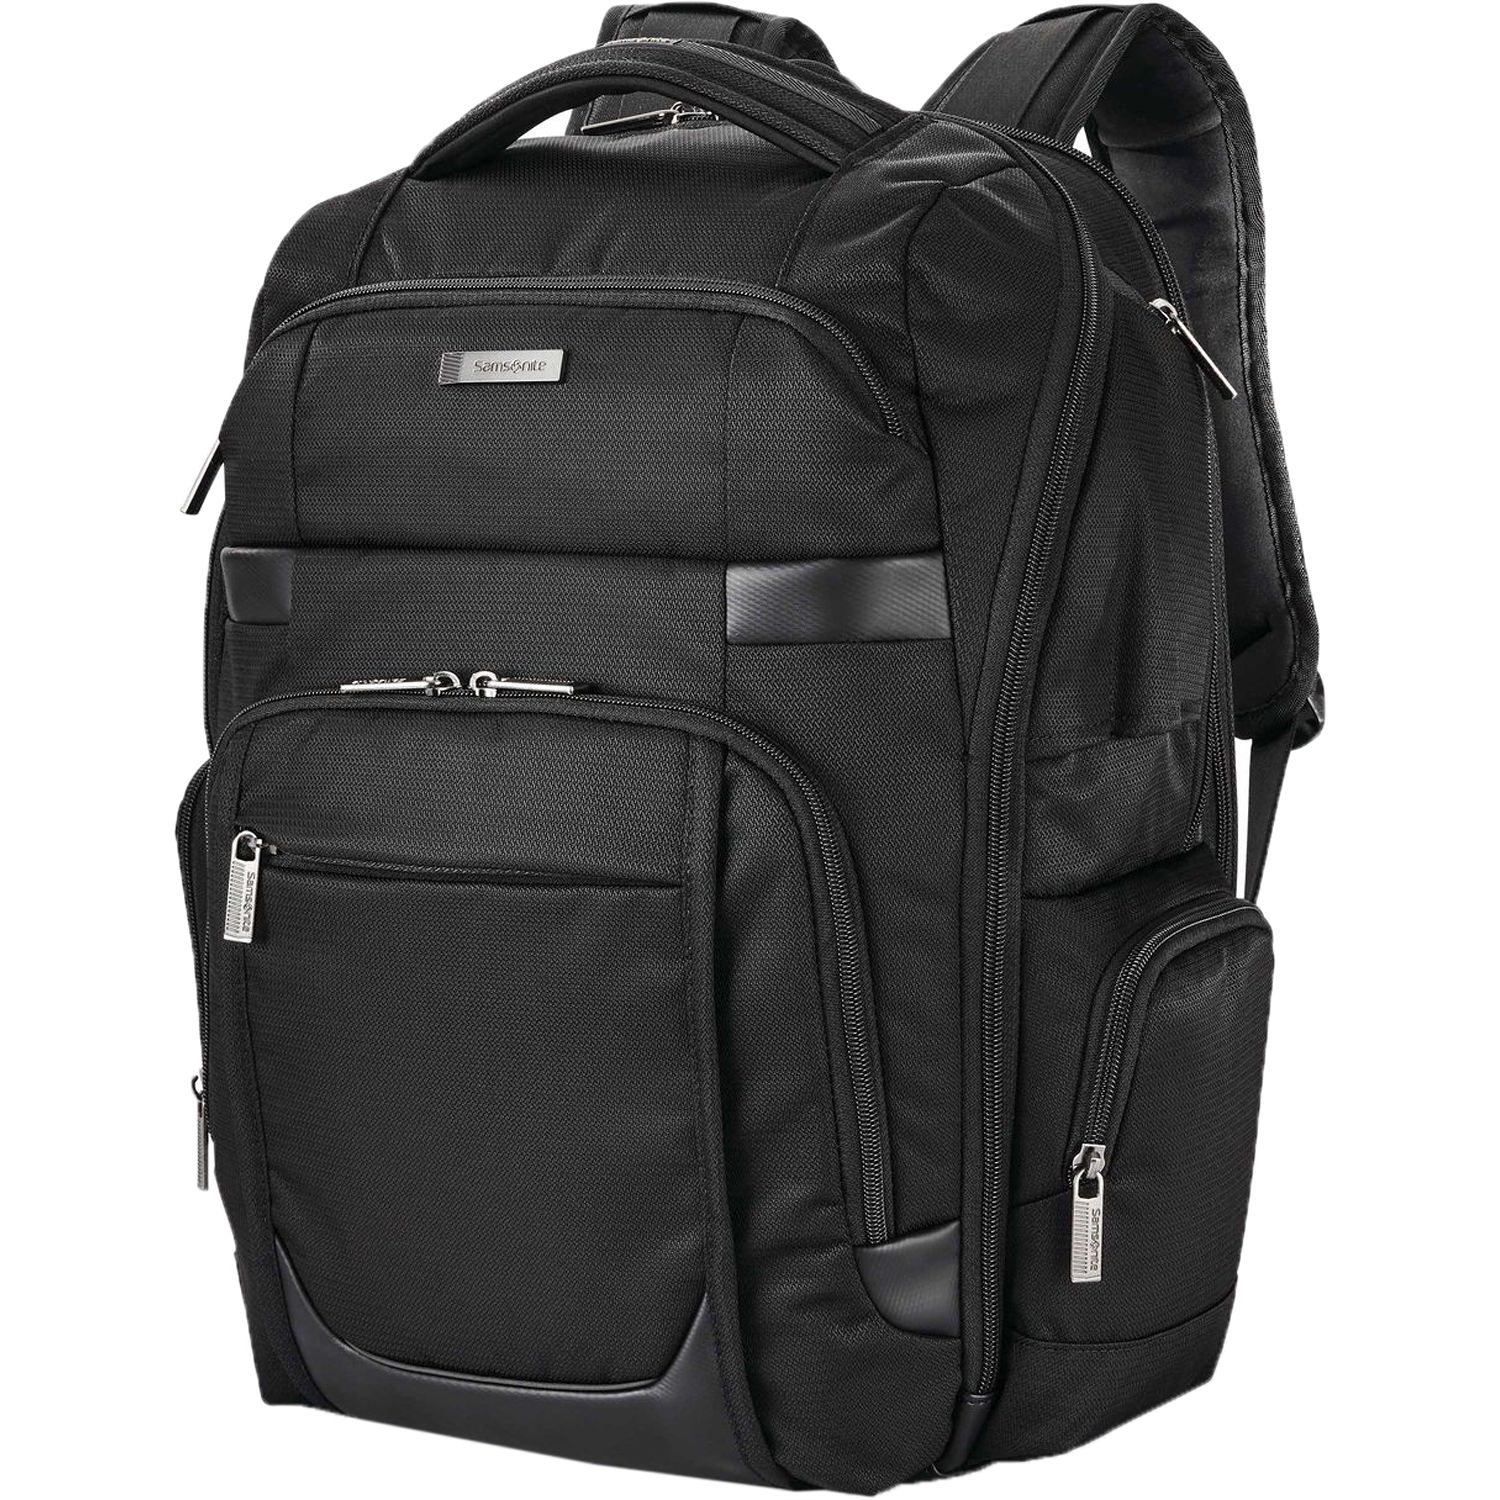 huge discount convenience goods 100% quality quarantee Samsonite Tectonic Lifestyle Sweetwater Backpack (Black)